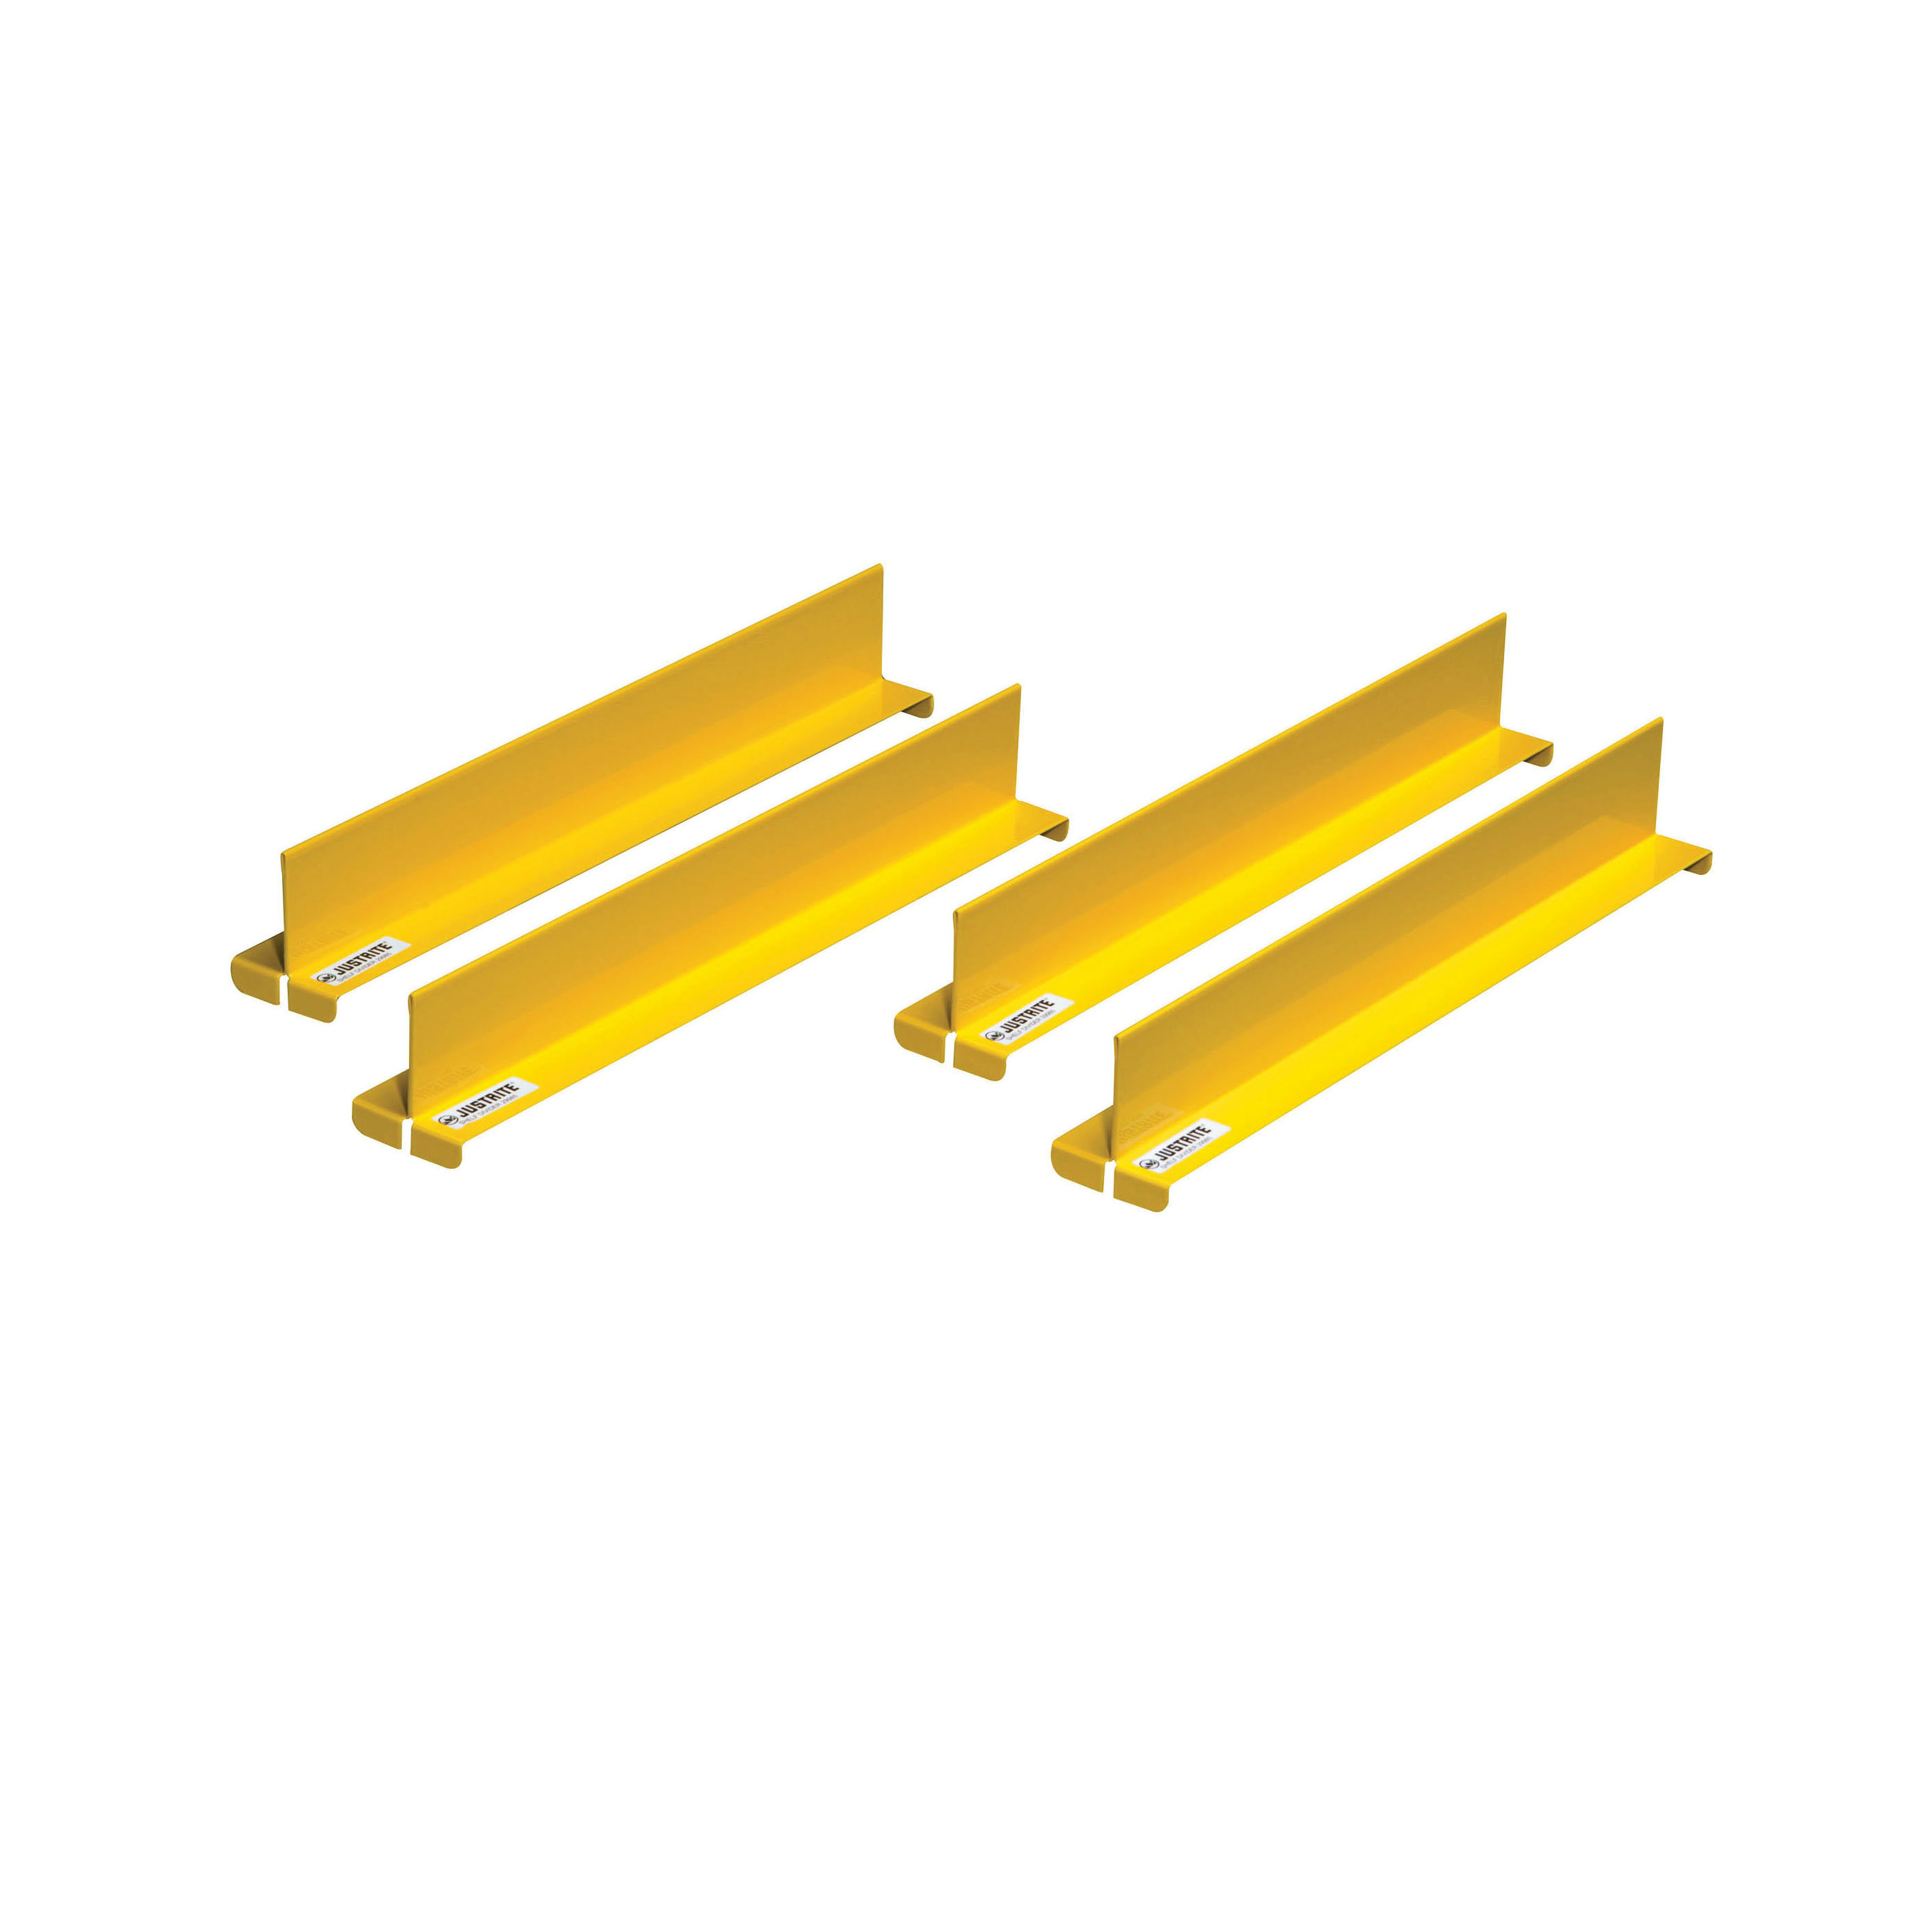 Justrite® 29985 Shelf Divider, For Use With 15 gal Compact, 22 gal Slimline and 17 gal Piggyback Cabinets, Yellow